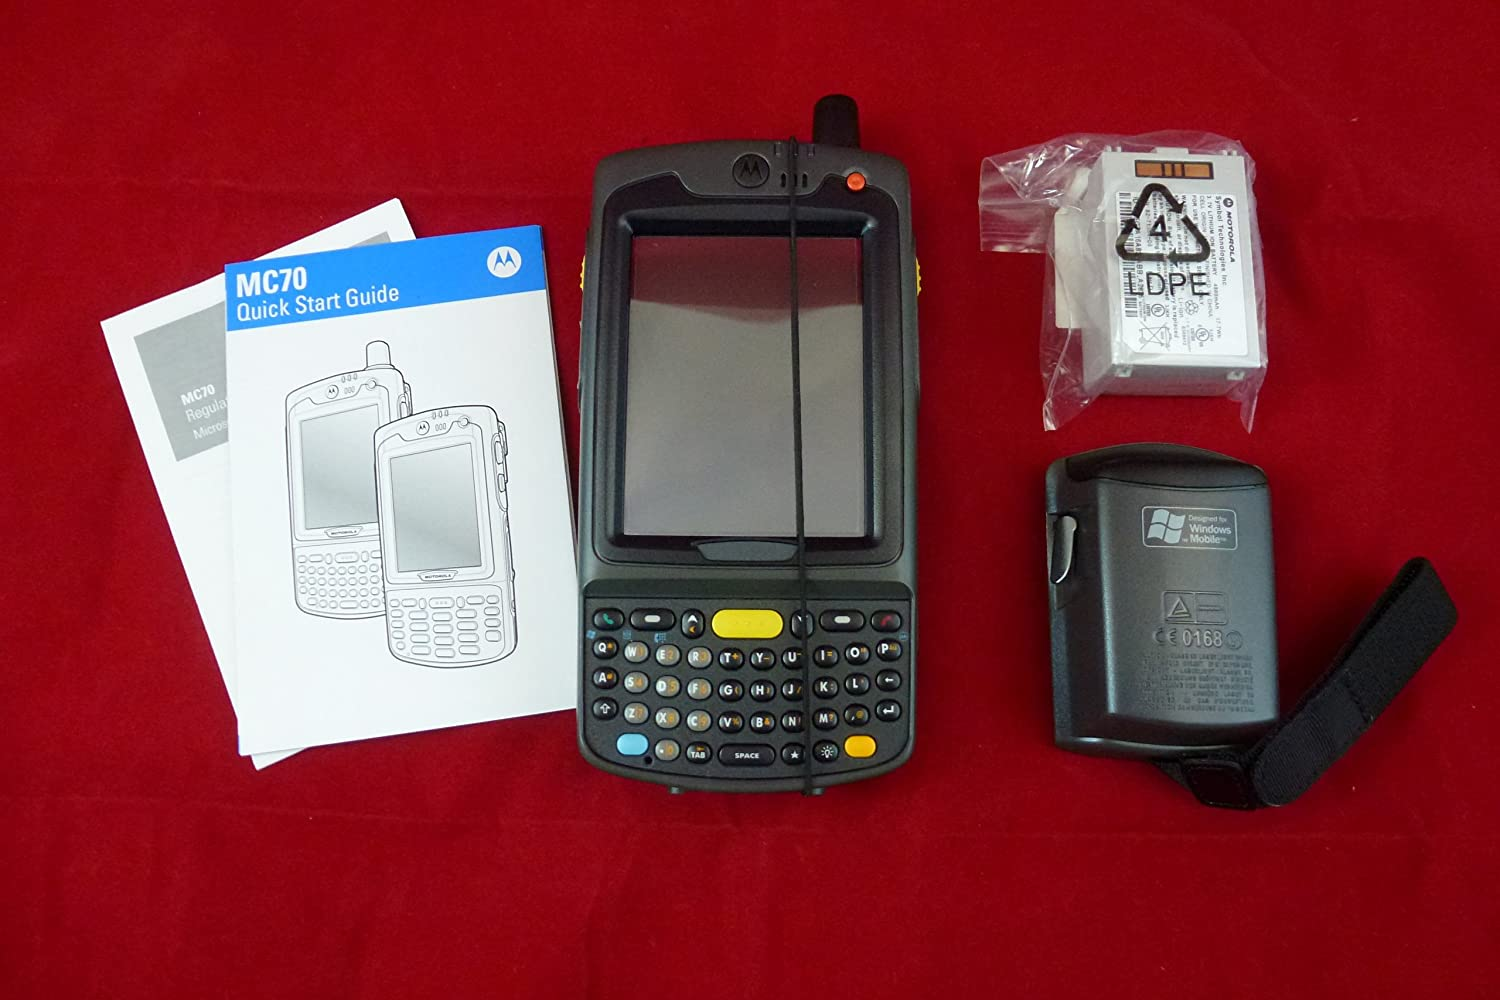 Motorola MC7094 GSM Cellular eGPRS WLAN802.11a b g Wi FiTM Qwerty Bluetooth MC7094 P2CDJQHAAWR